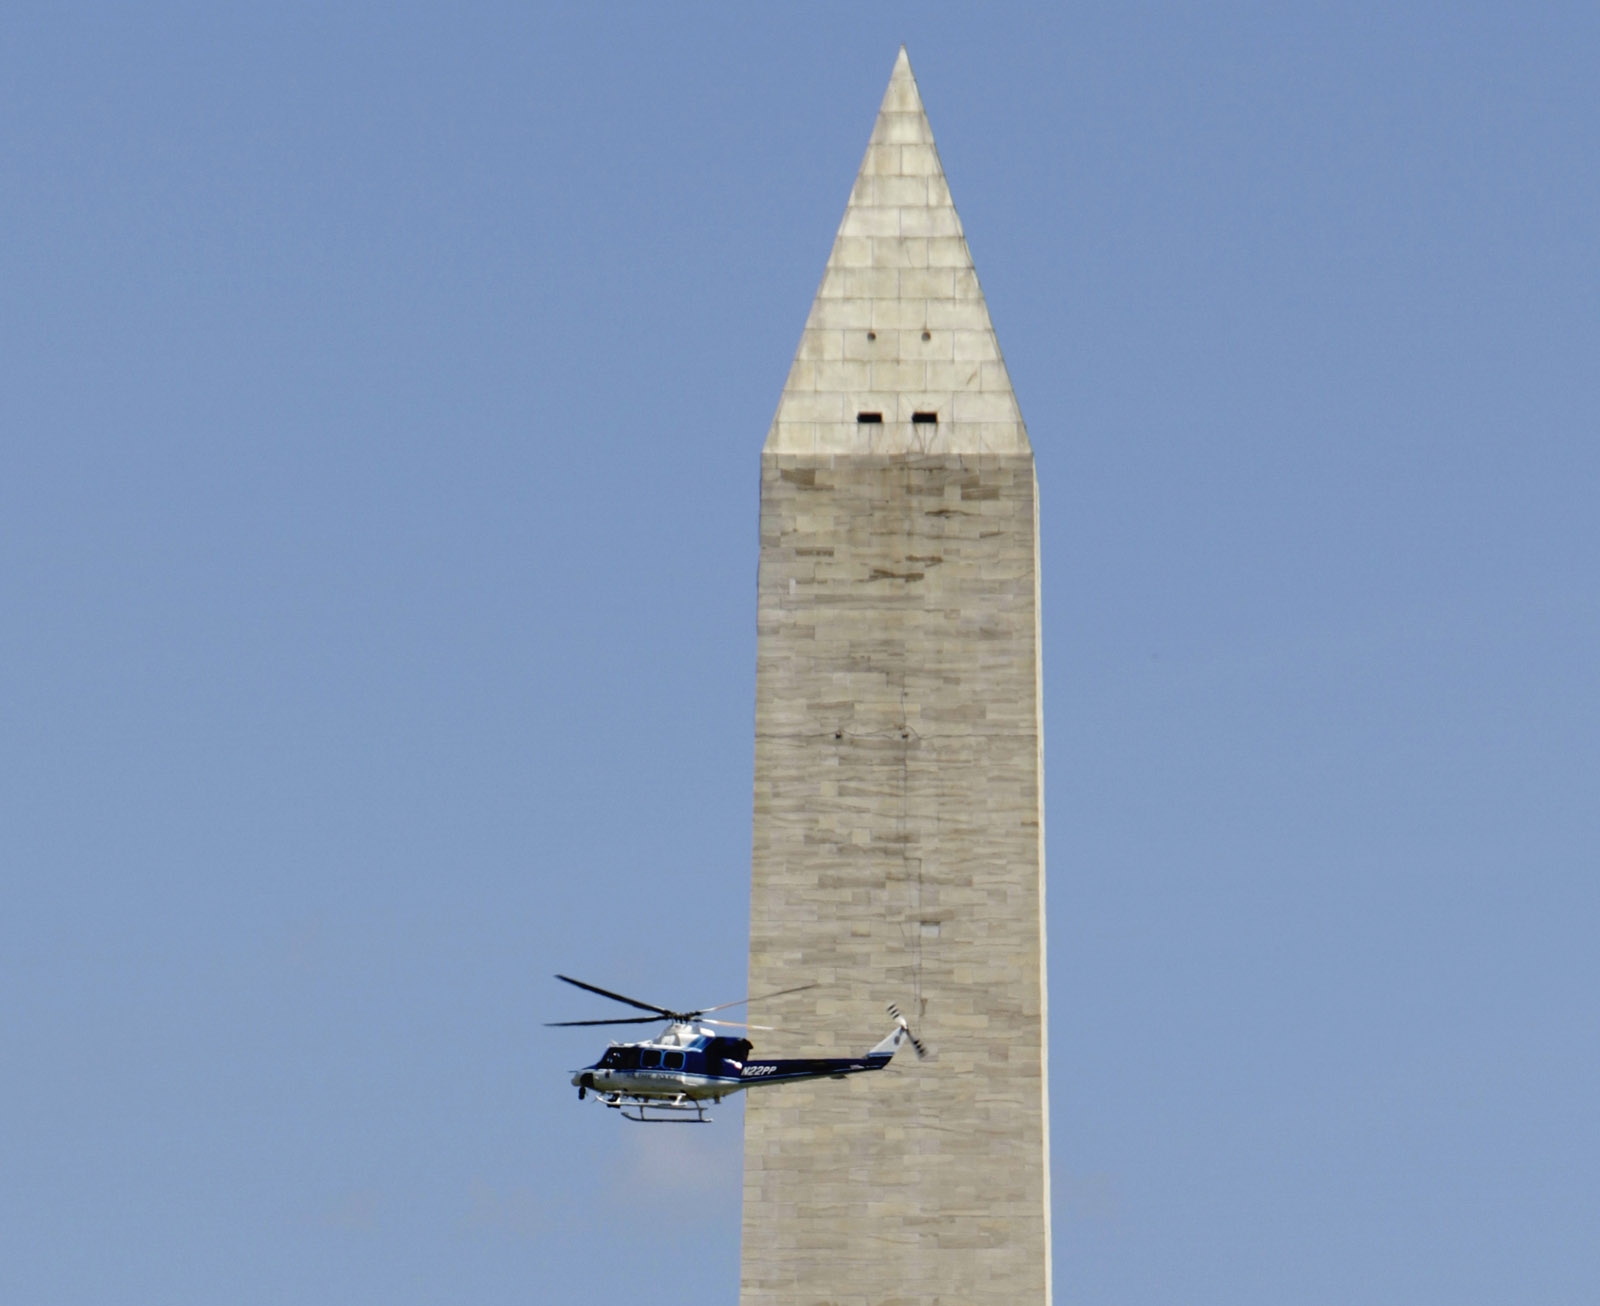 helicopter in minecraft with Earthquake Damage Likely Cause Of Washington Monument Elevator Breakdowns on He162mm in addition Minecraft Airplane Tutorial besides Iron Man Mansion Es Vedra also Lego Juniors The Incredibles 2 Sets Available On Amazon besides MV Princess of the Stars.